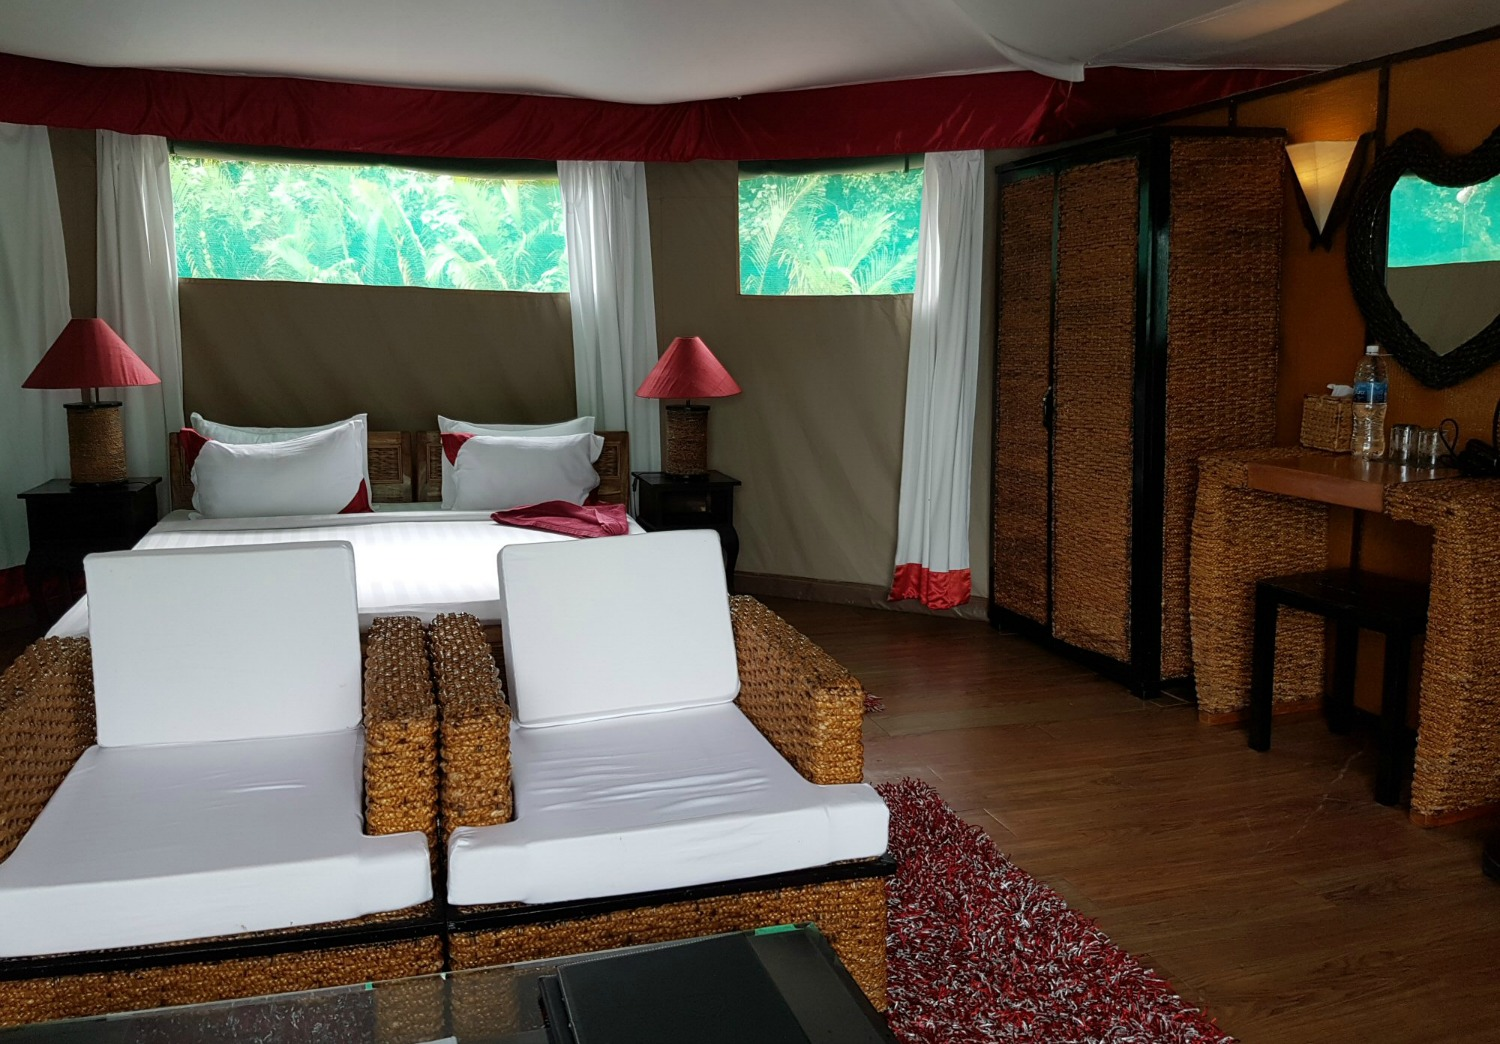 Bedroom in the floating tents at Four Rivers Floating Lodge - discovering Cambodia's Cardamom Mountains with kids